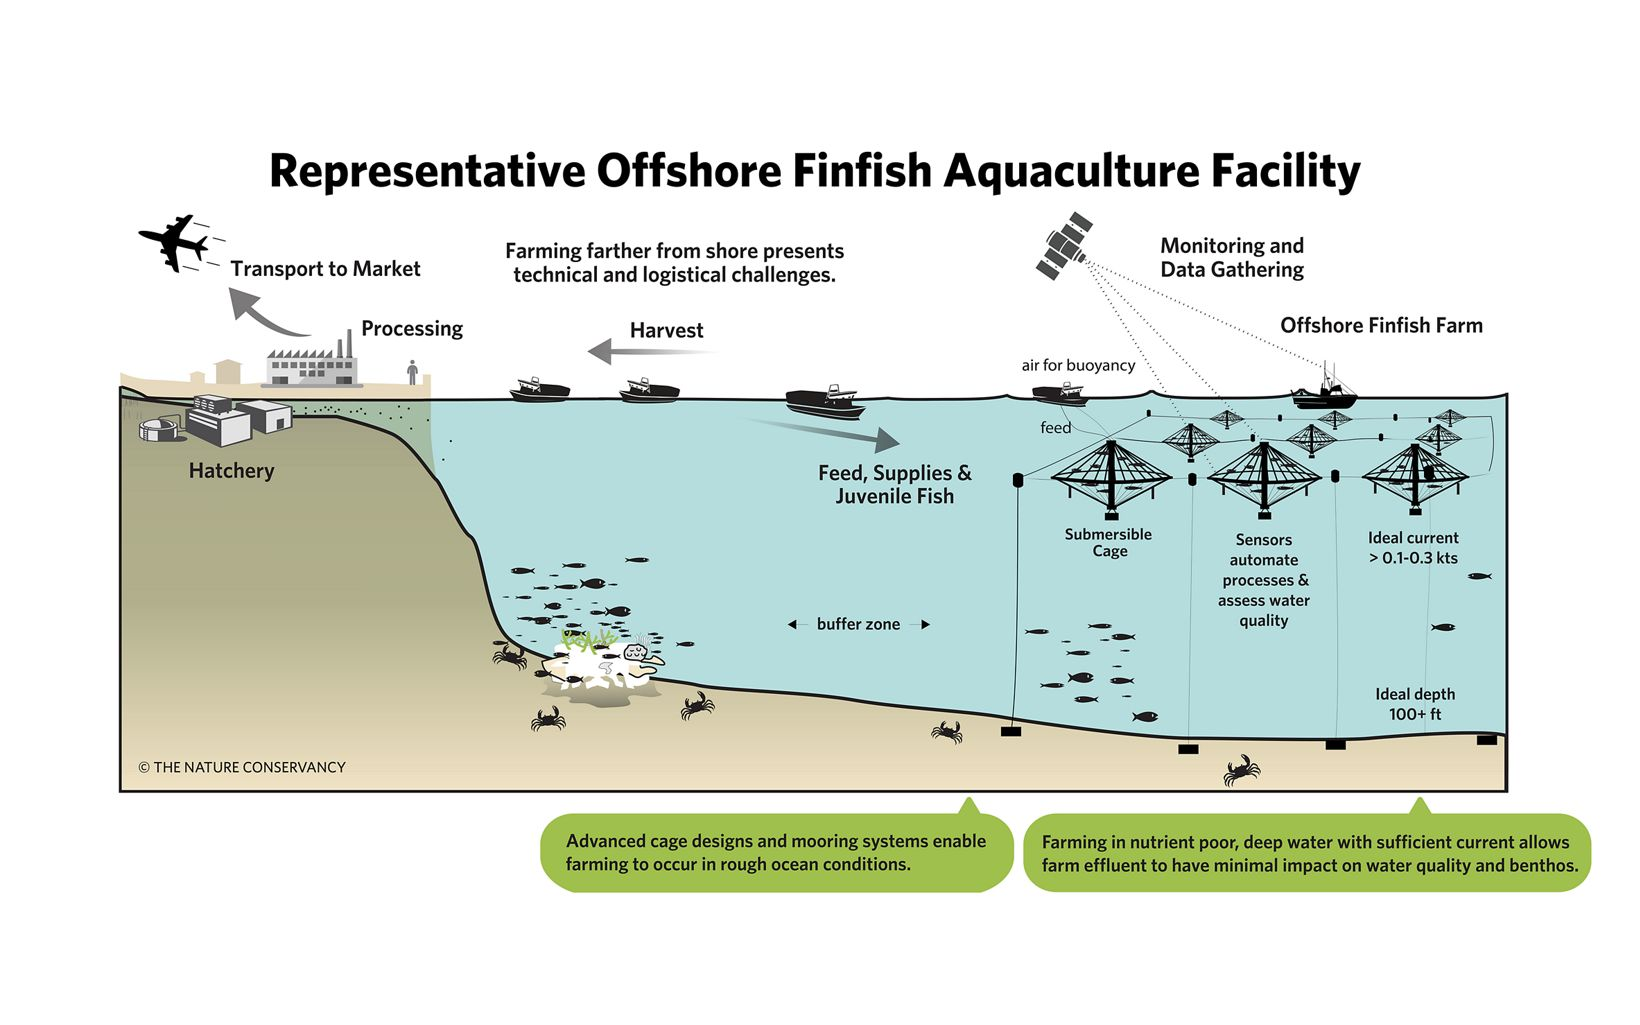 Offshore finfish farming has the potential to provide another sustainable and scalable alternative to near-shore aquaculture and is likely to constitute an important subset of overall sector growth.